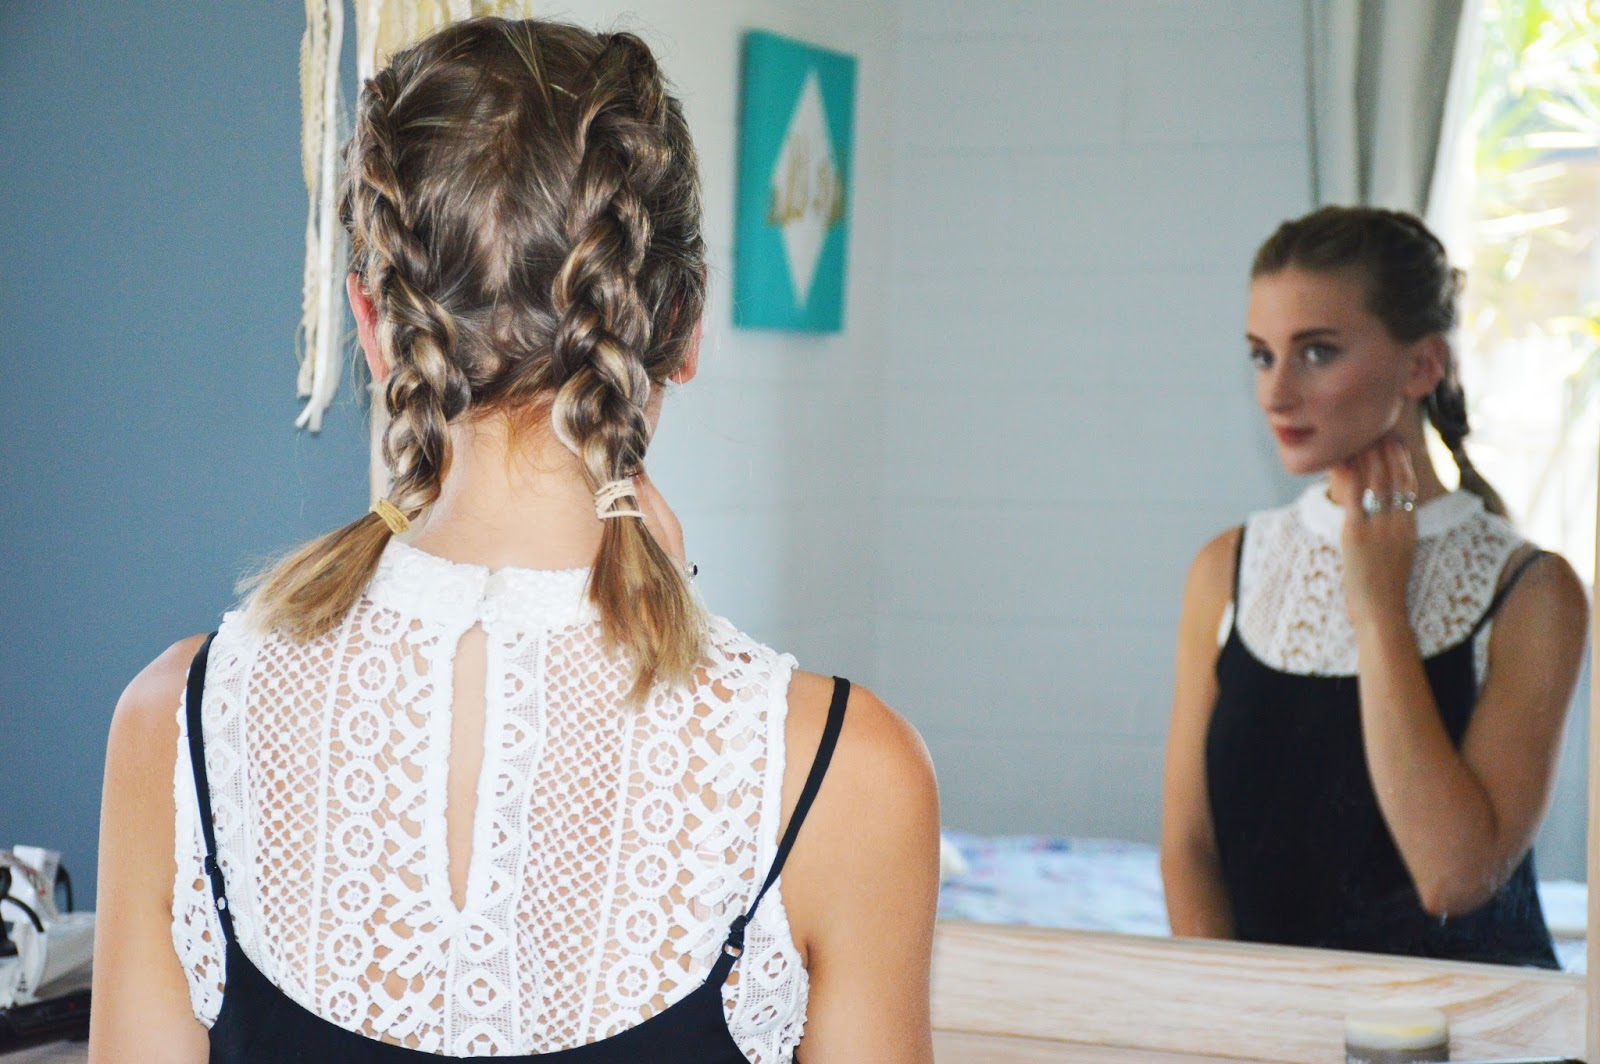 3 Braided Hairstyles For A Lob Or Mid Length Hair The Daily Luxe